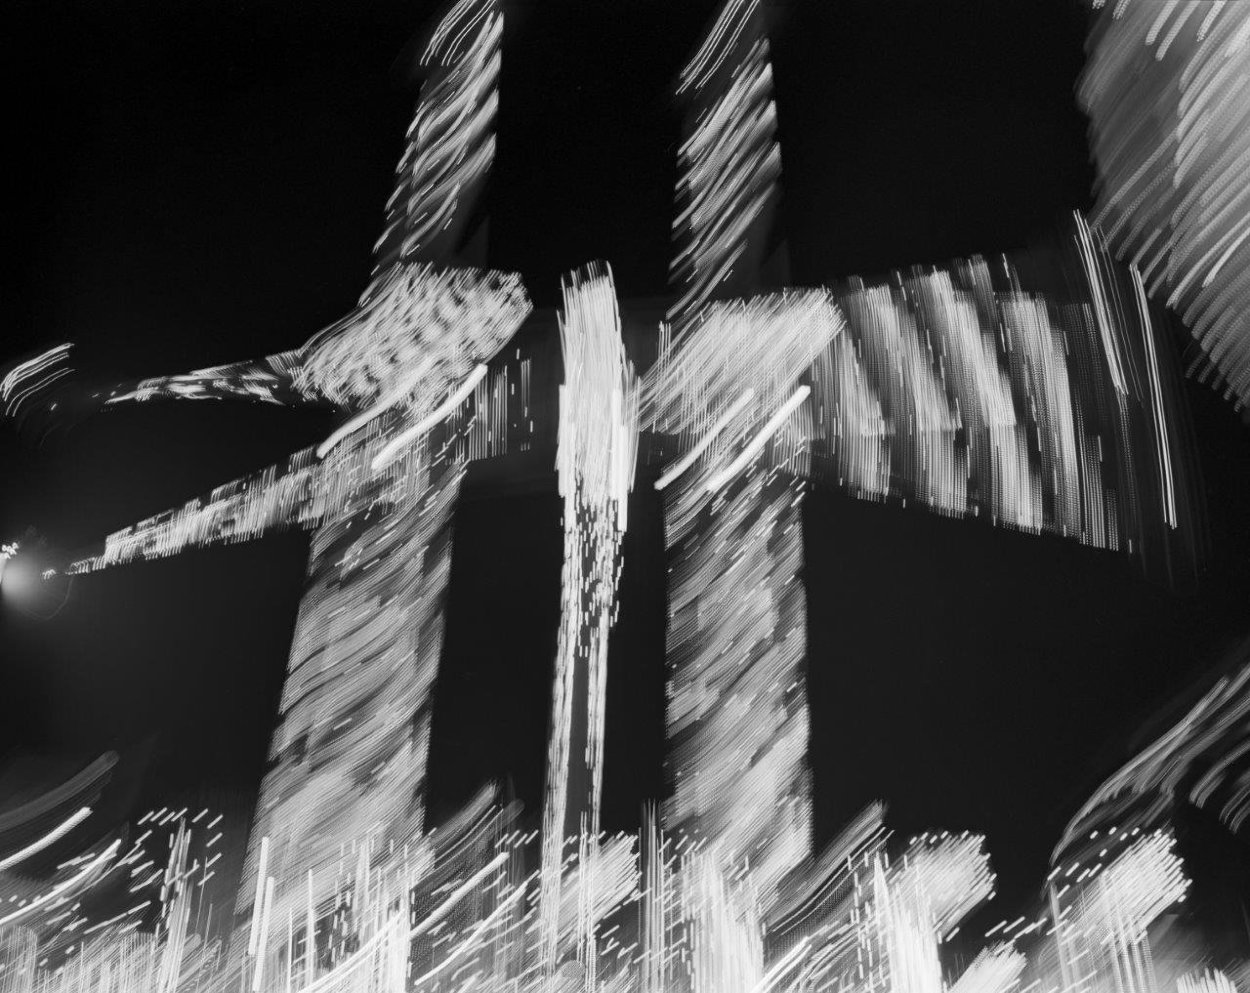 Midway Lights 2014 Limited Edition Print by Simeon Posen